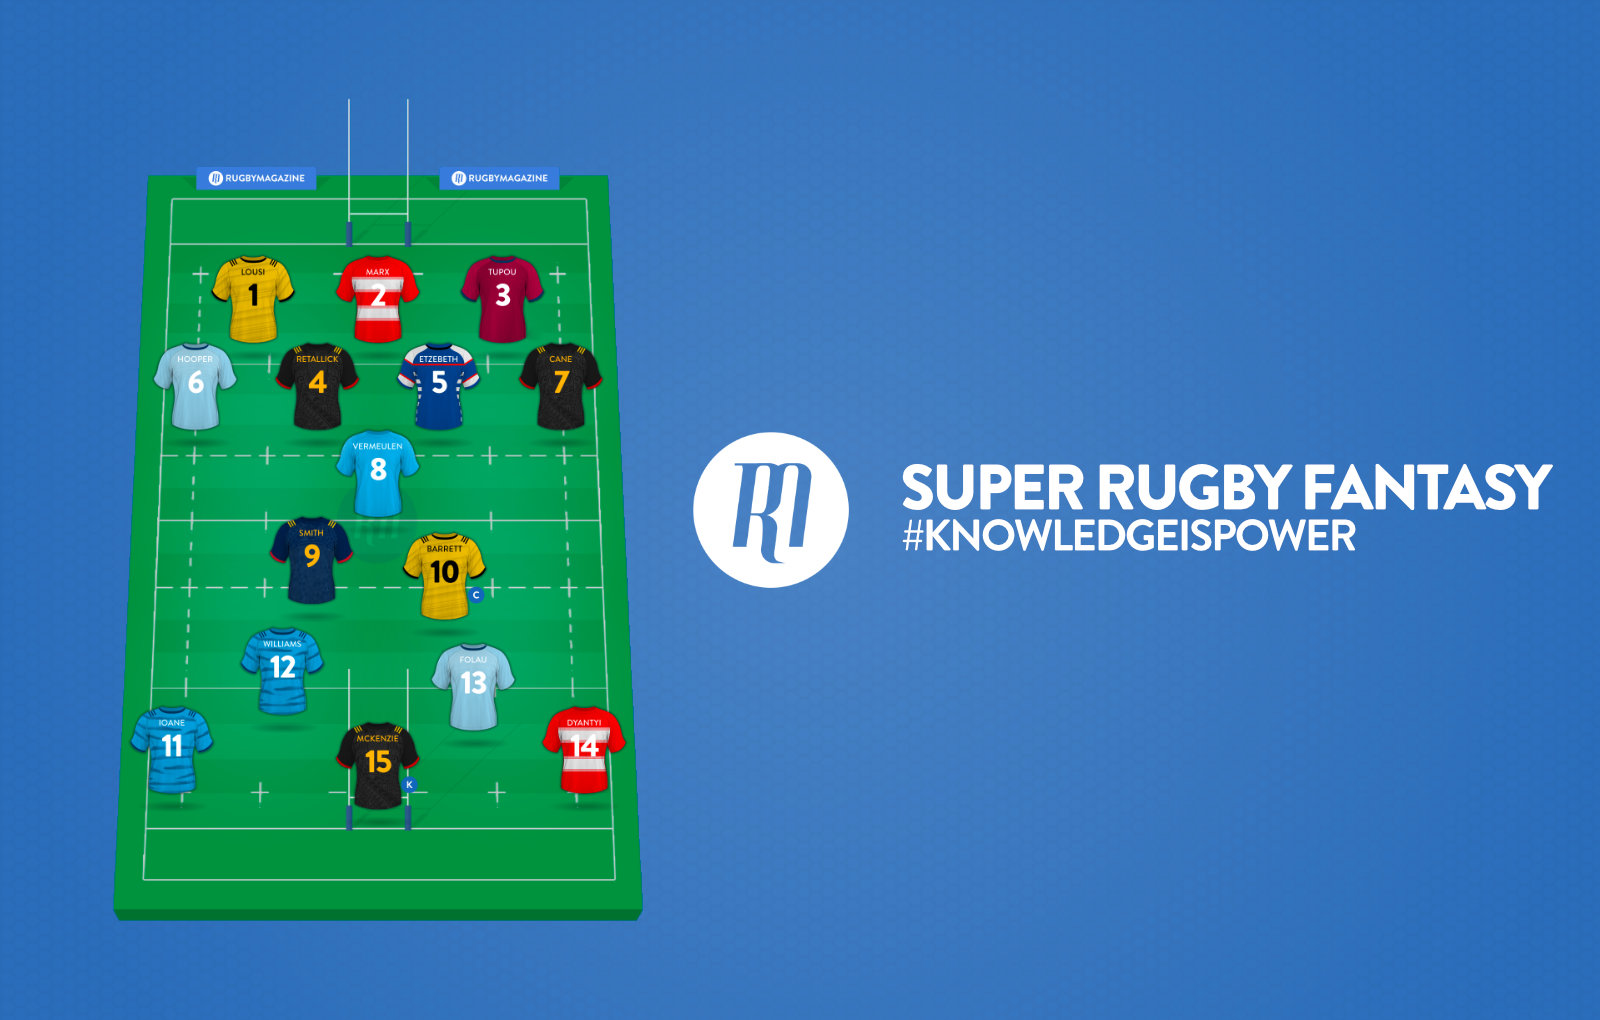 Super Rugby Fantasy: Team Selection, Strategy & Tips